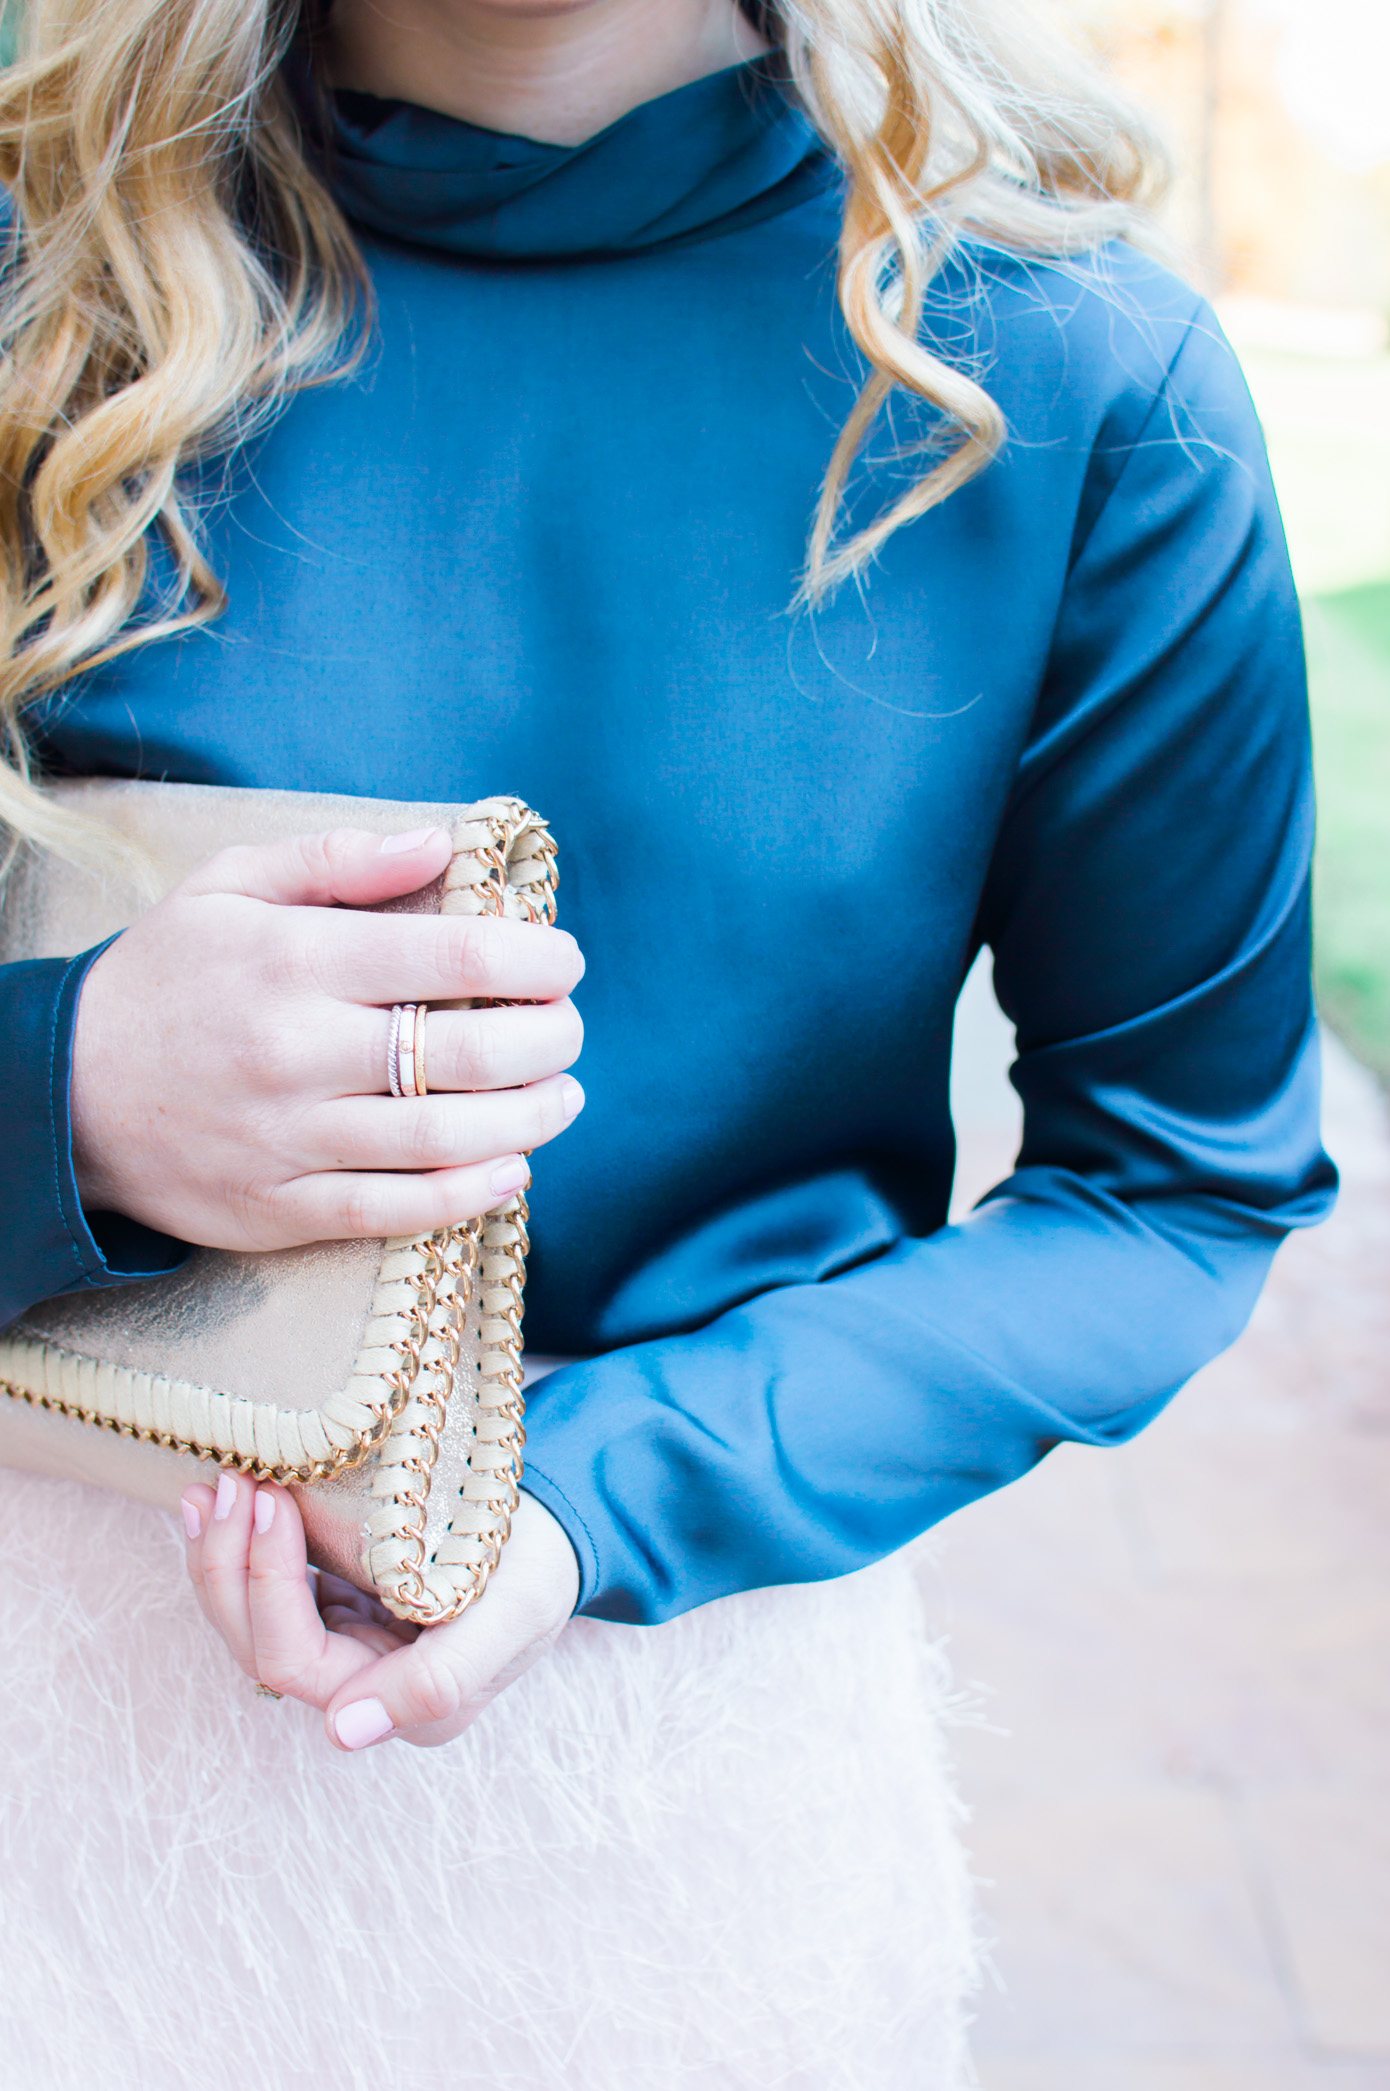 Holiday Fringe Pencil Skirt | Holiday Party Outfit Idea | Louella Reese Life & Style Blog